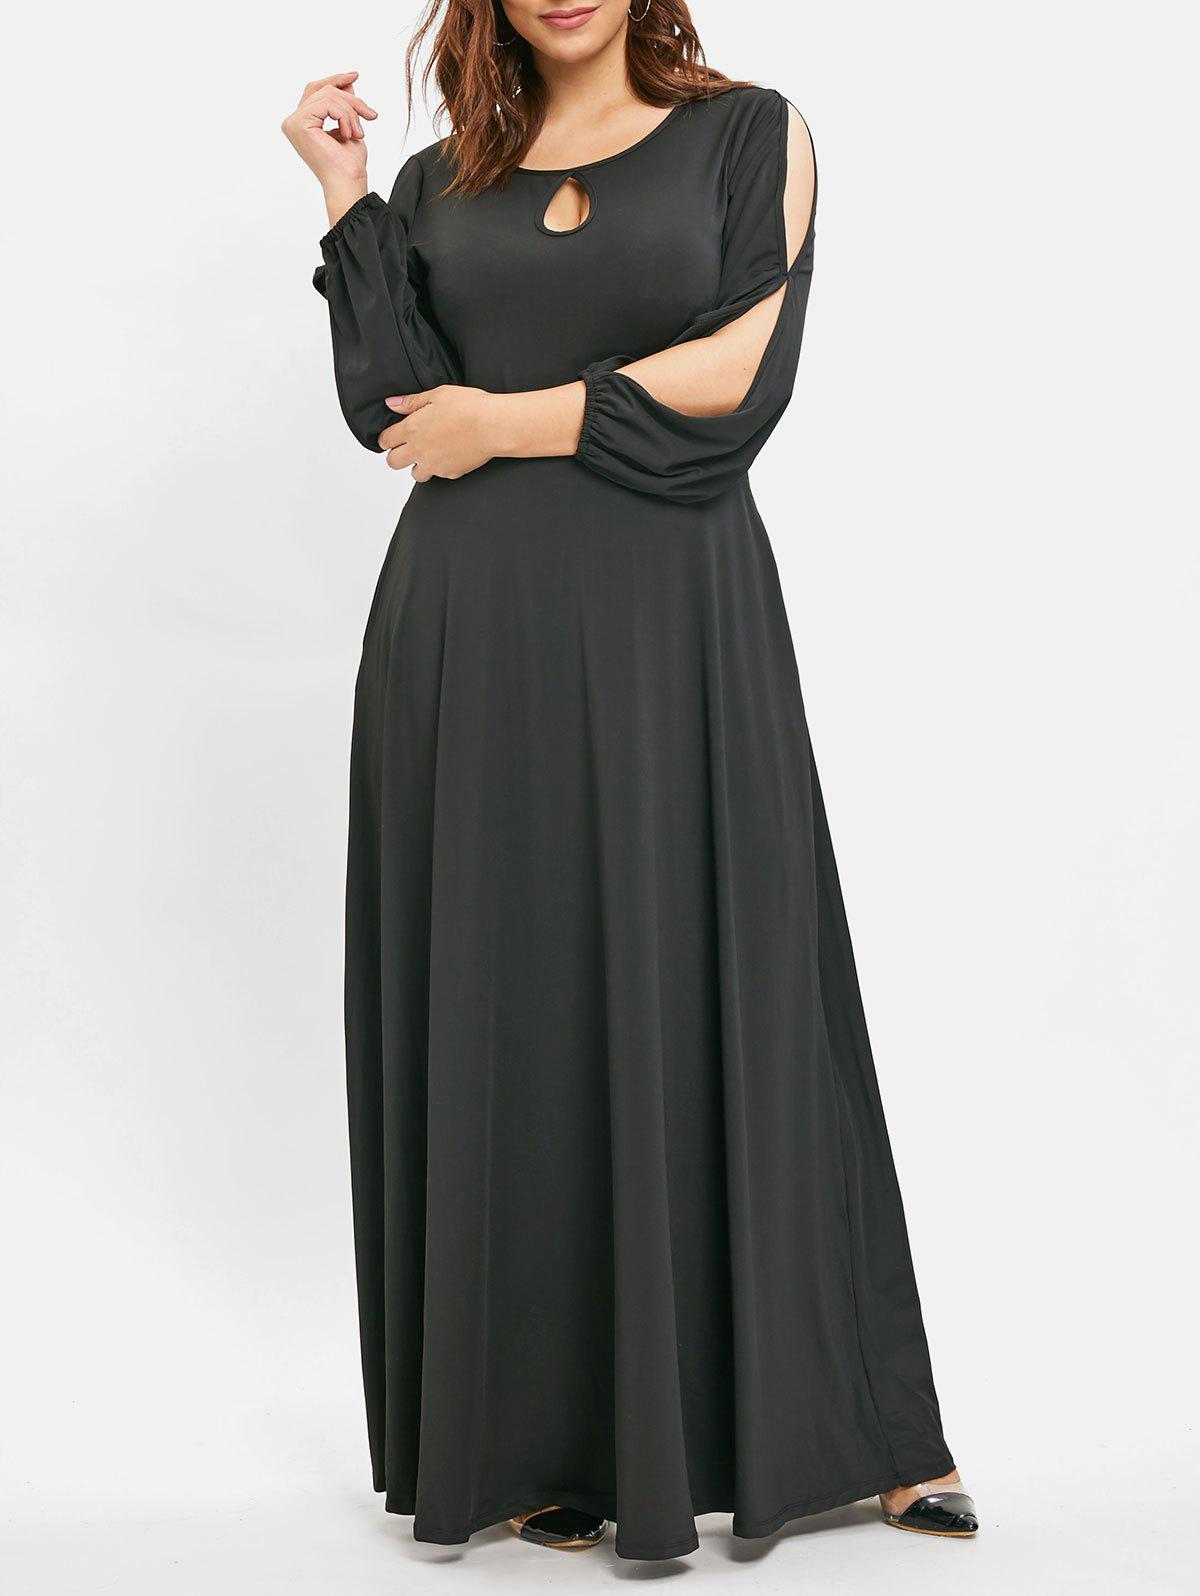 Store Long Sleeve Plus Size Keyhole Neck Maxi Dress